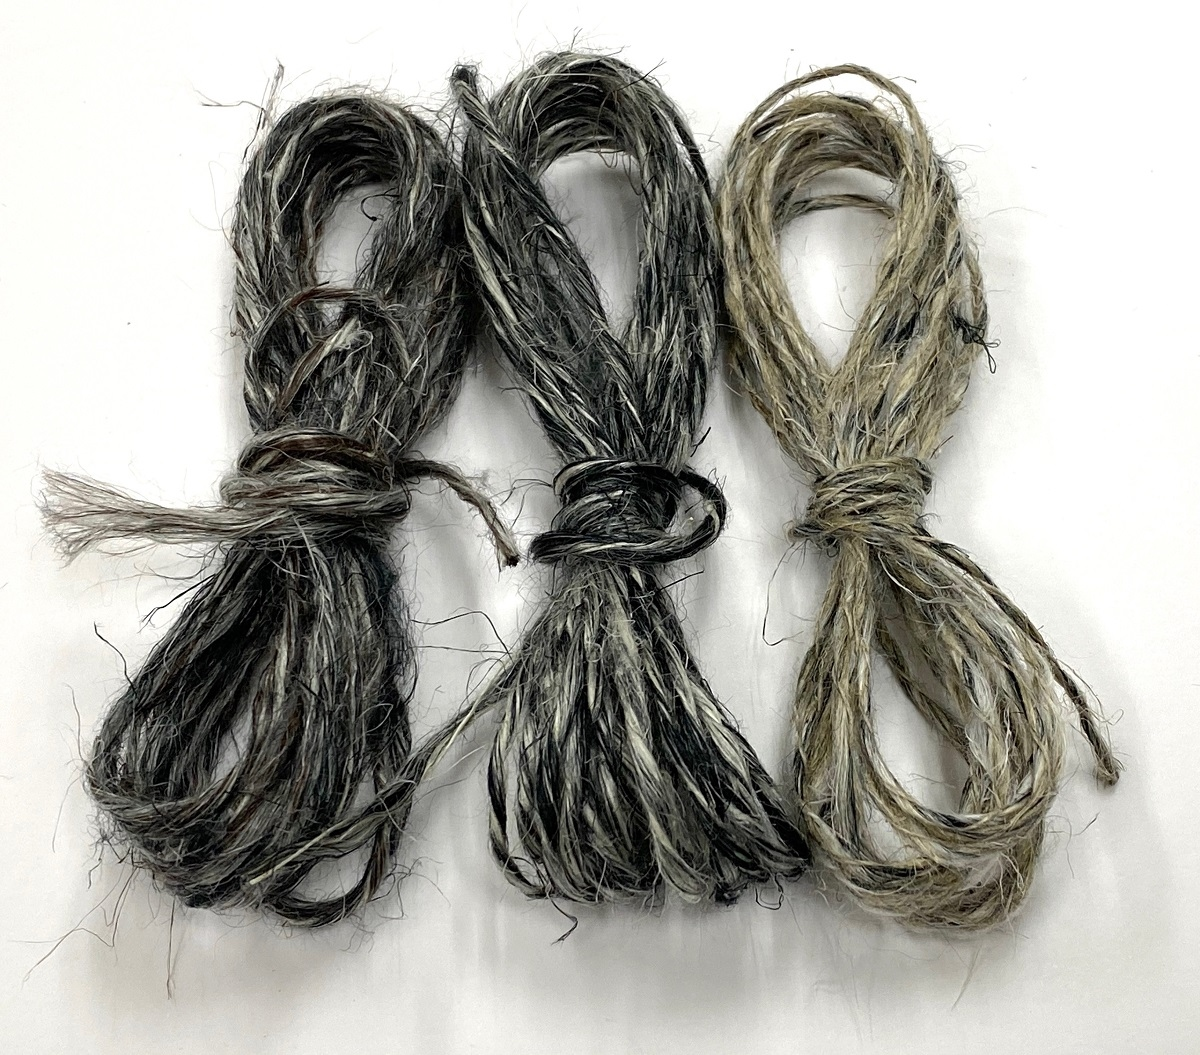 wet spun old tradition knitting special color 3 GREY ANTRA